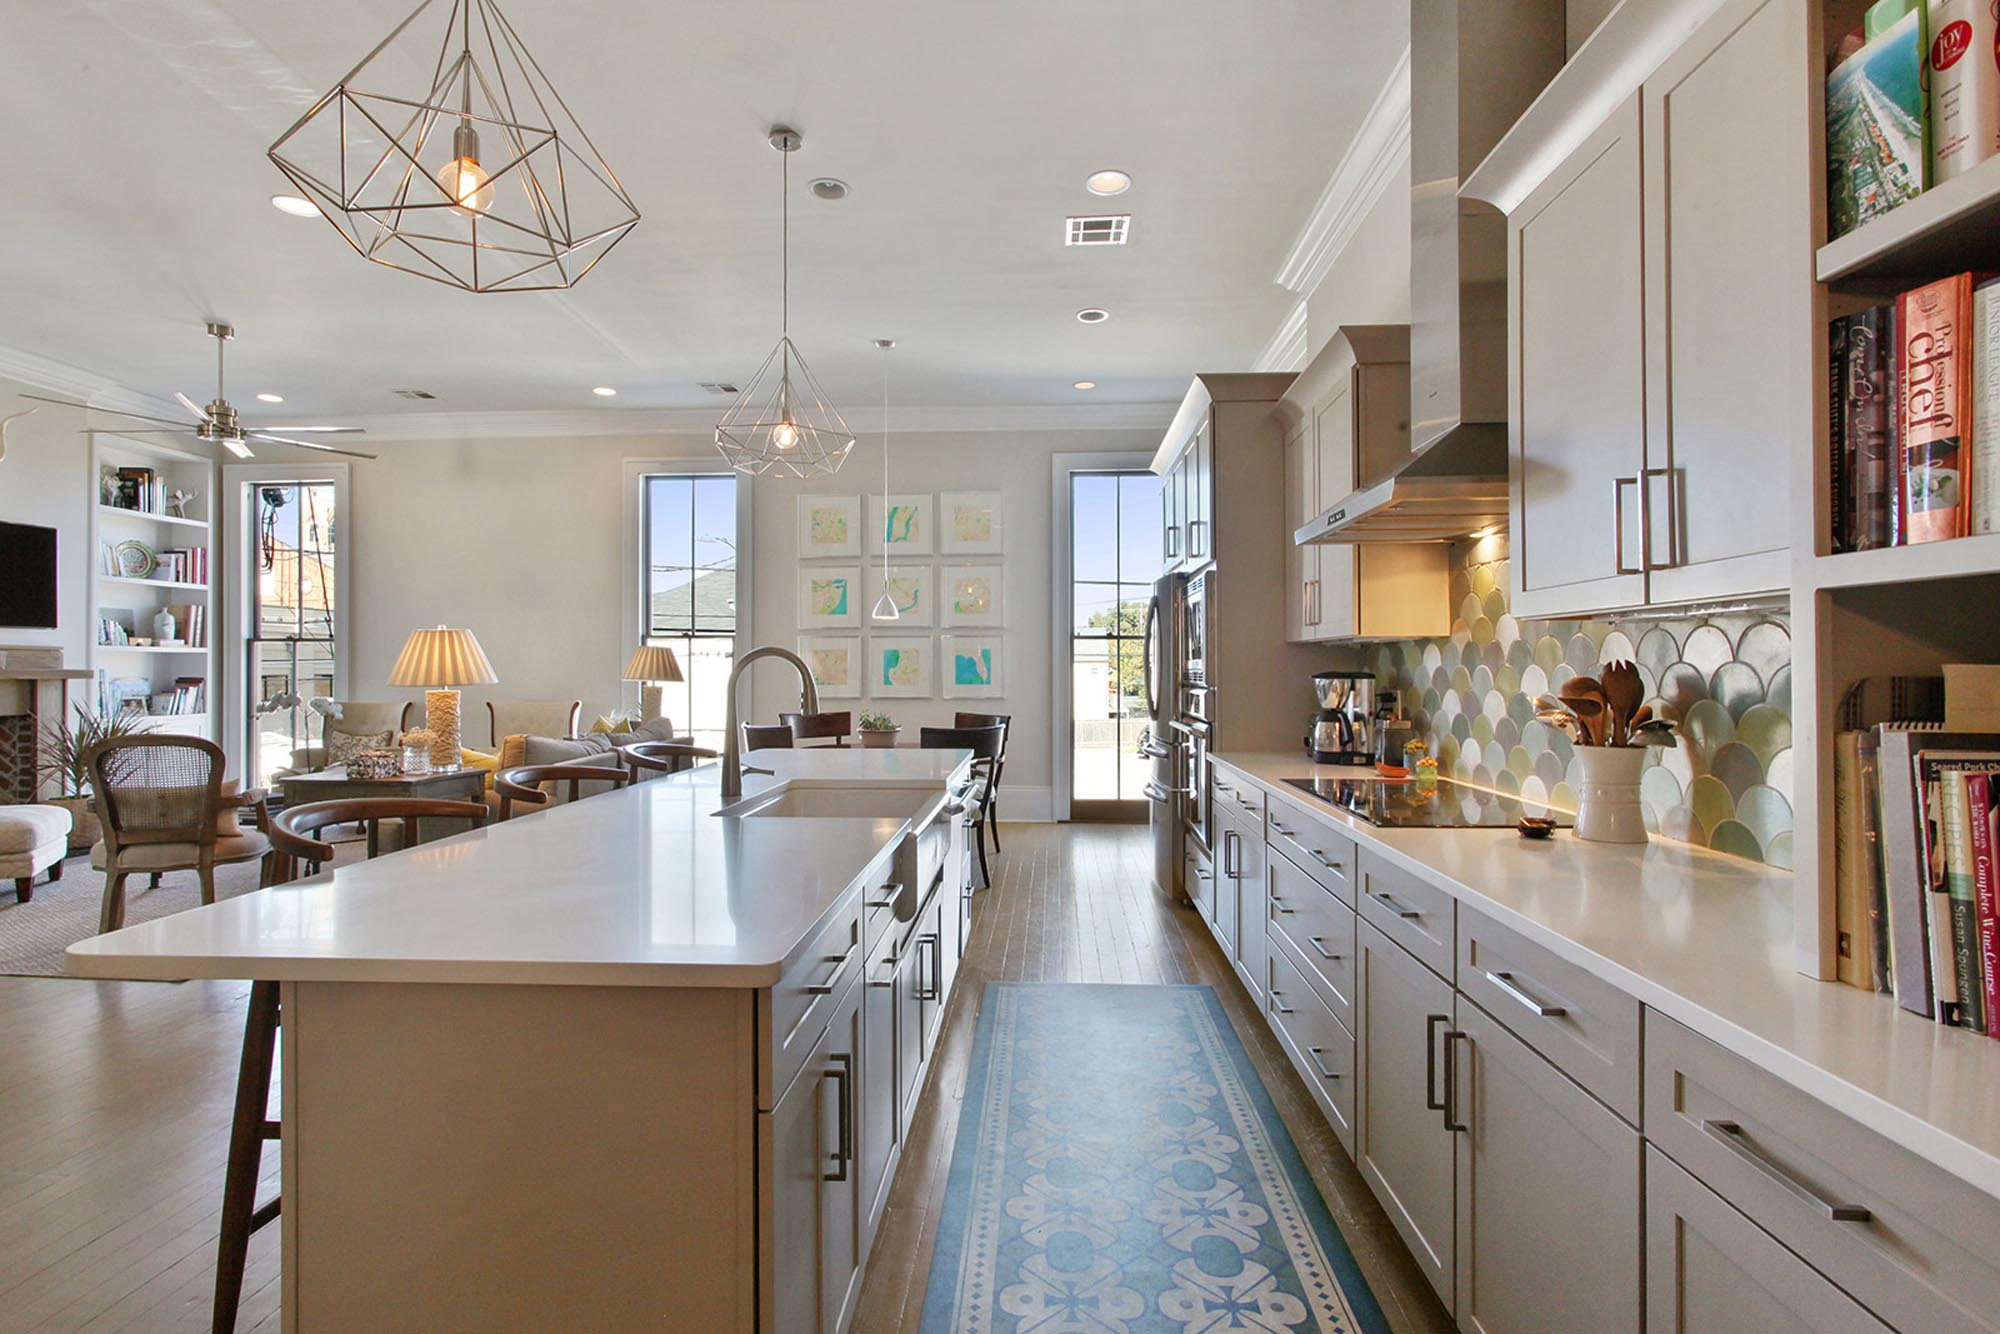 Long kitchen island with geometric hanging metal light fixture above